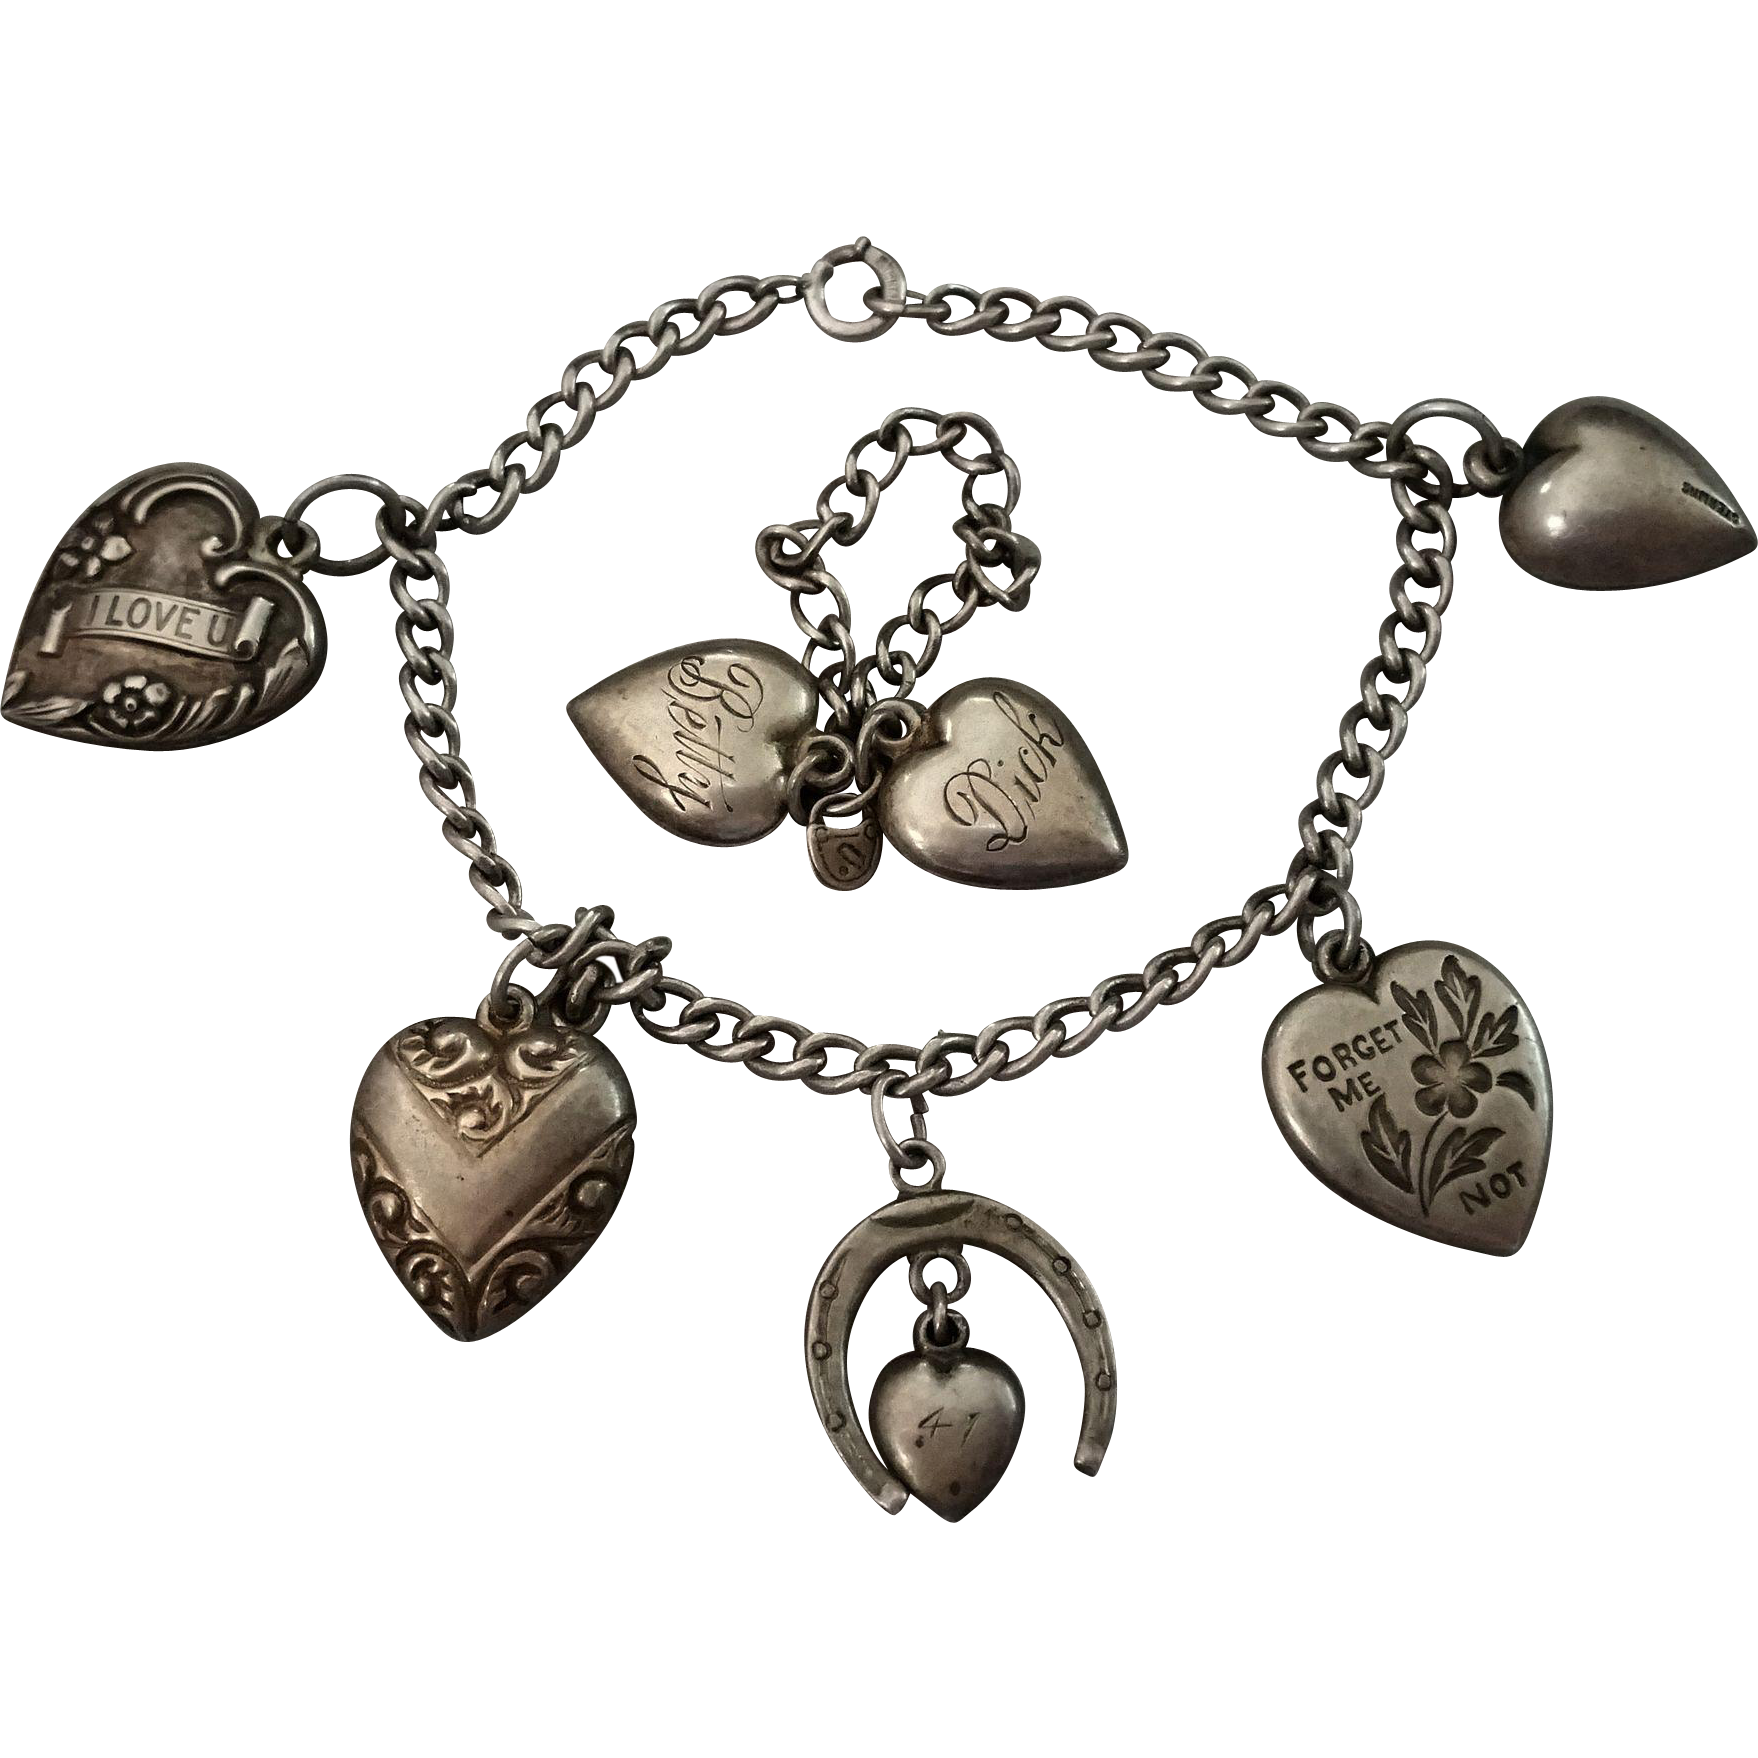 puffy heart charm bracelet and puffy hearts ring on chain 1940s